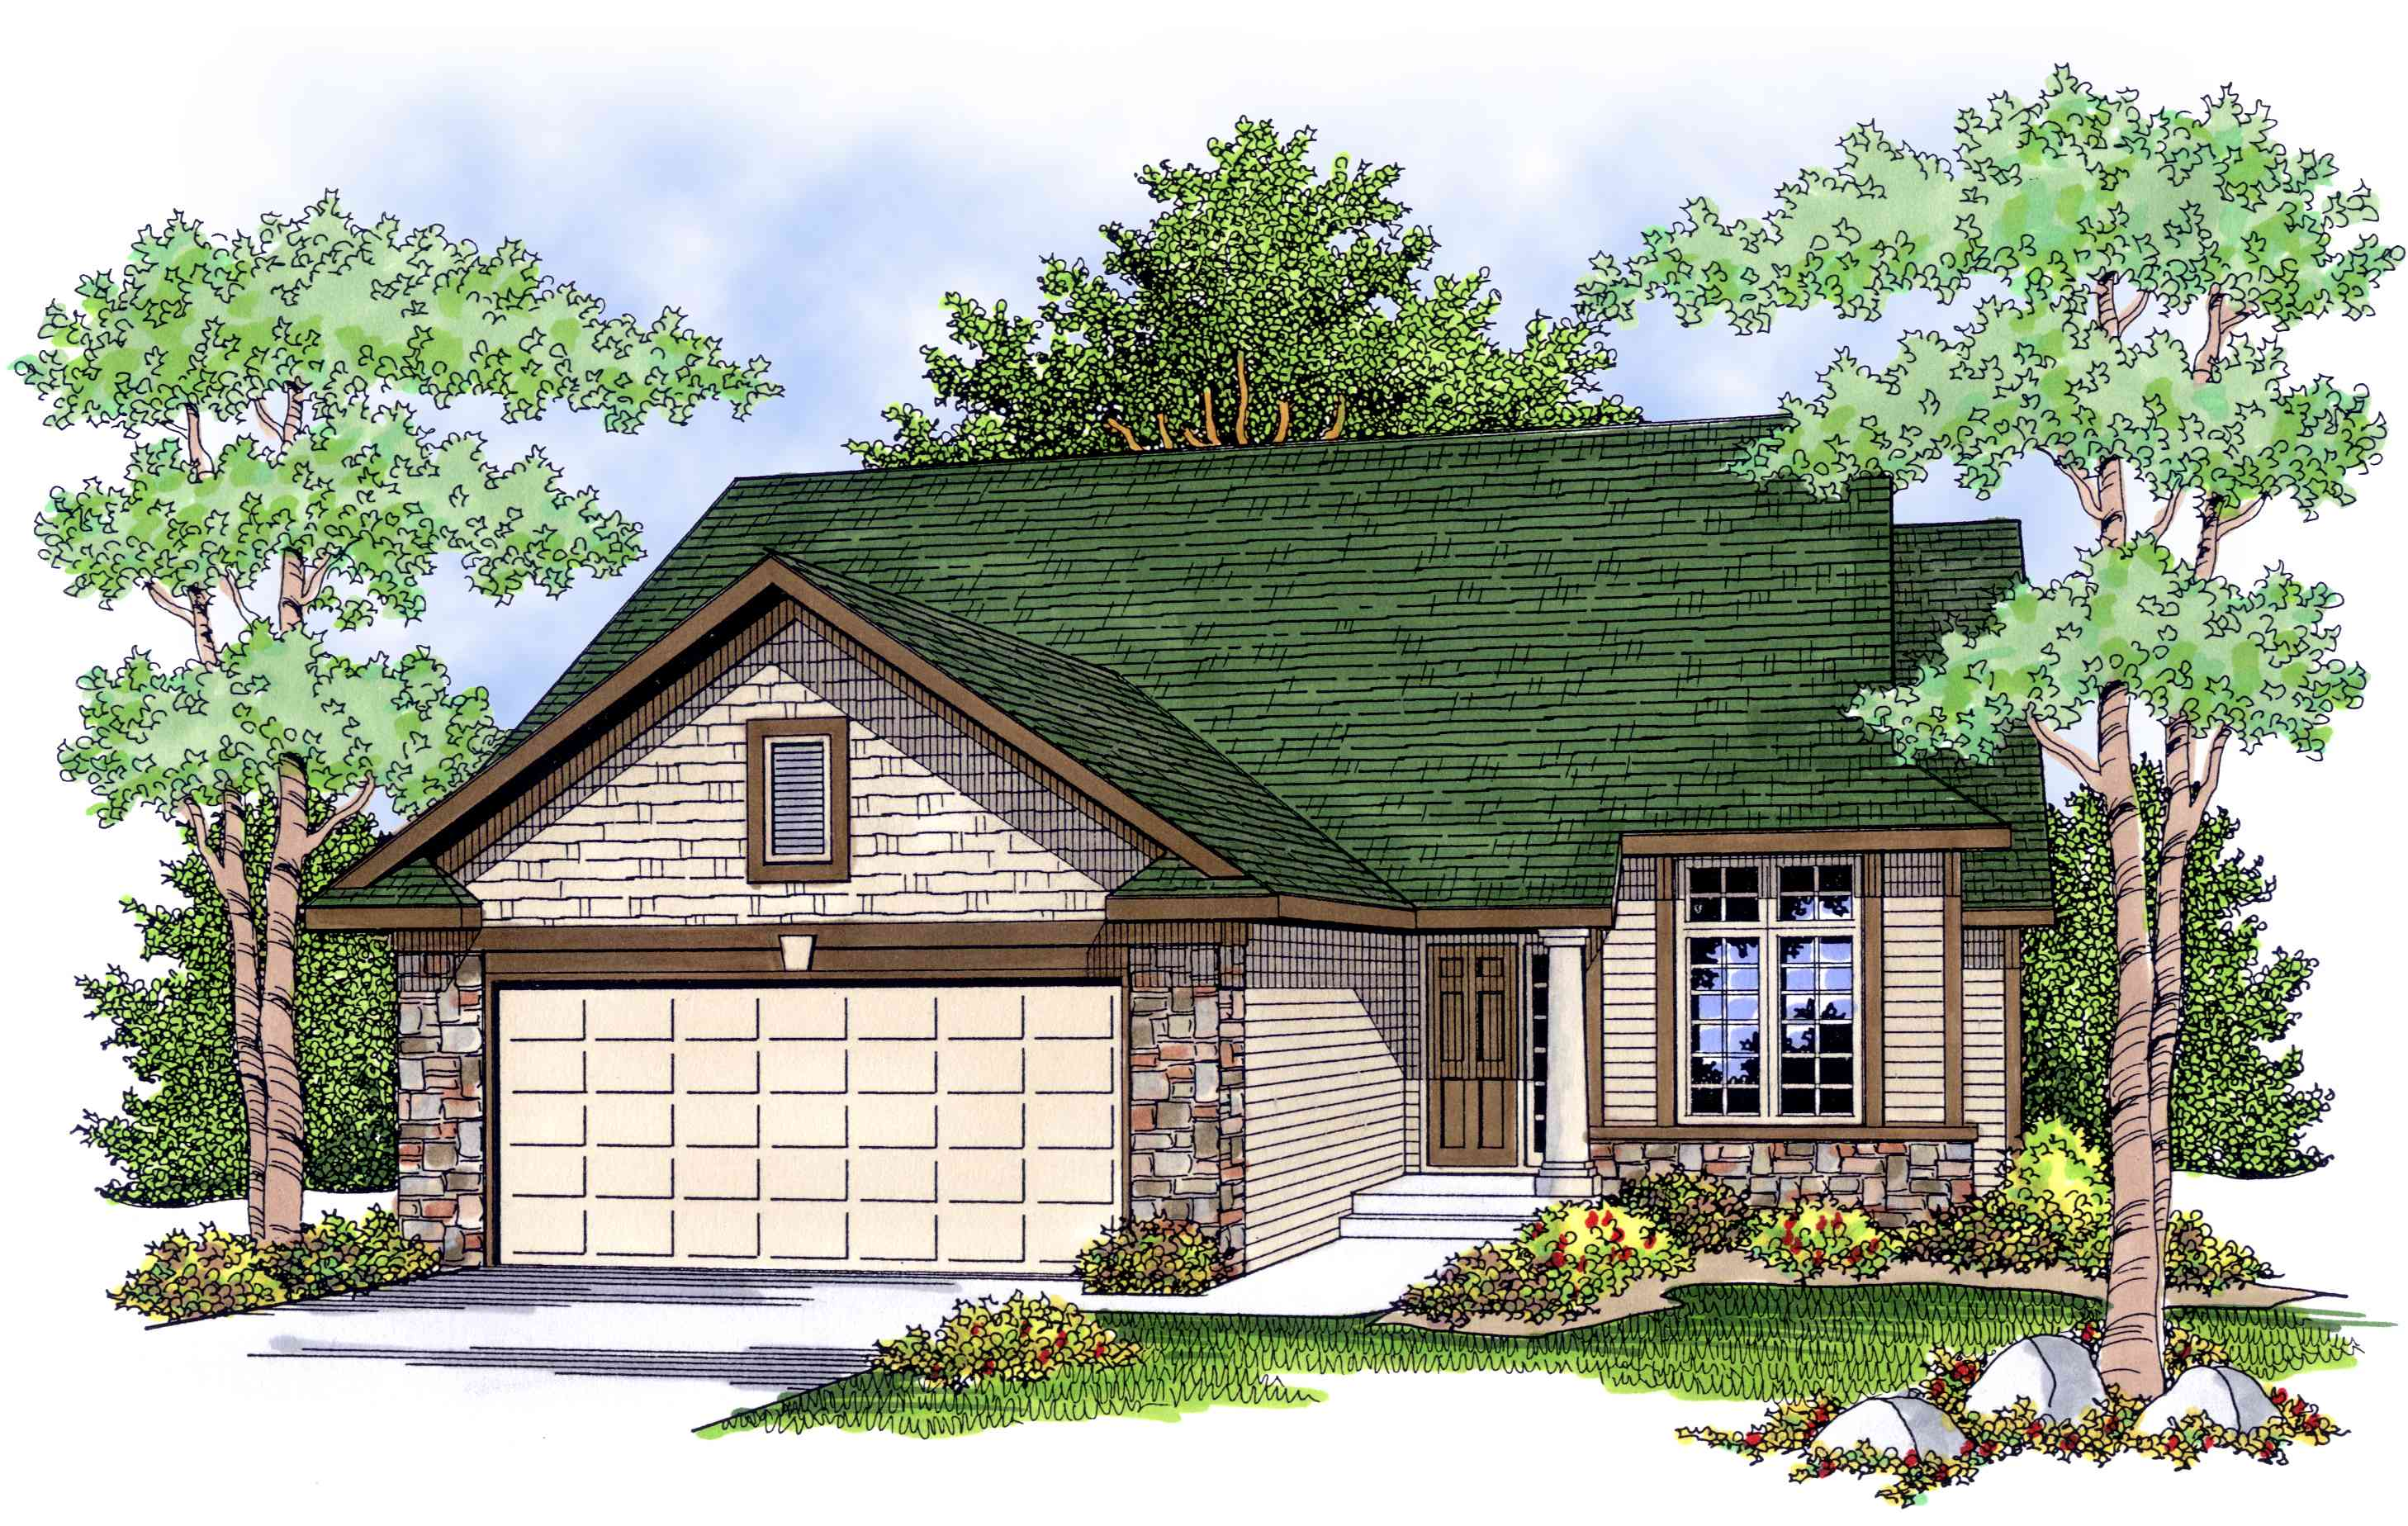 Economical and easy to build ranch house plan 89007ah for Economical house plans to build